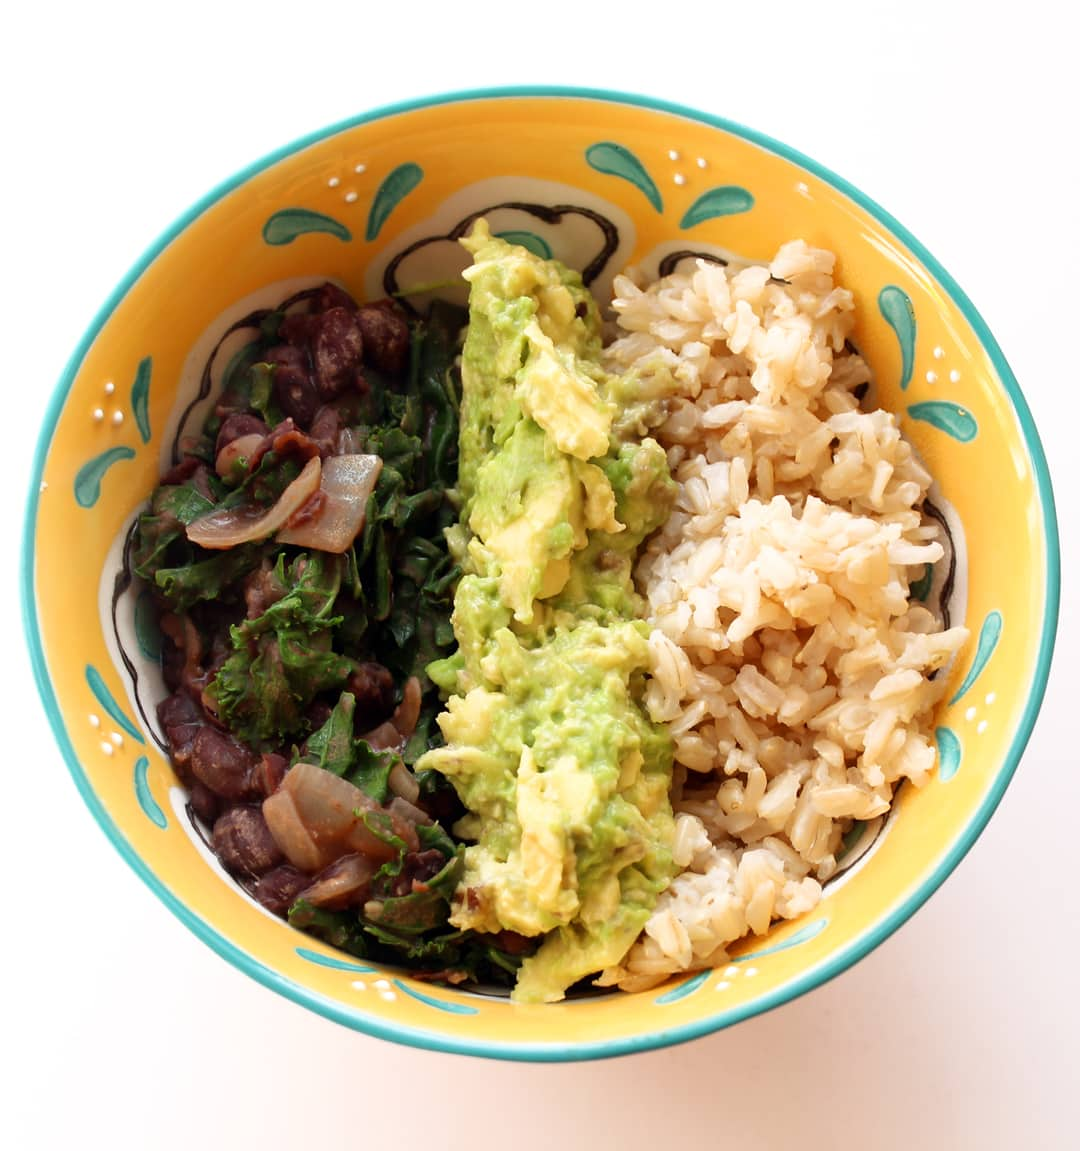 Black Bean and Rice Bowls with Guacamole